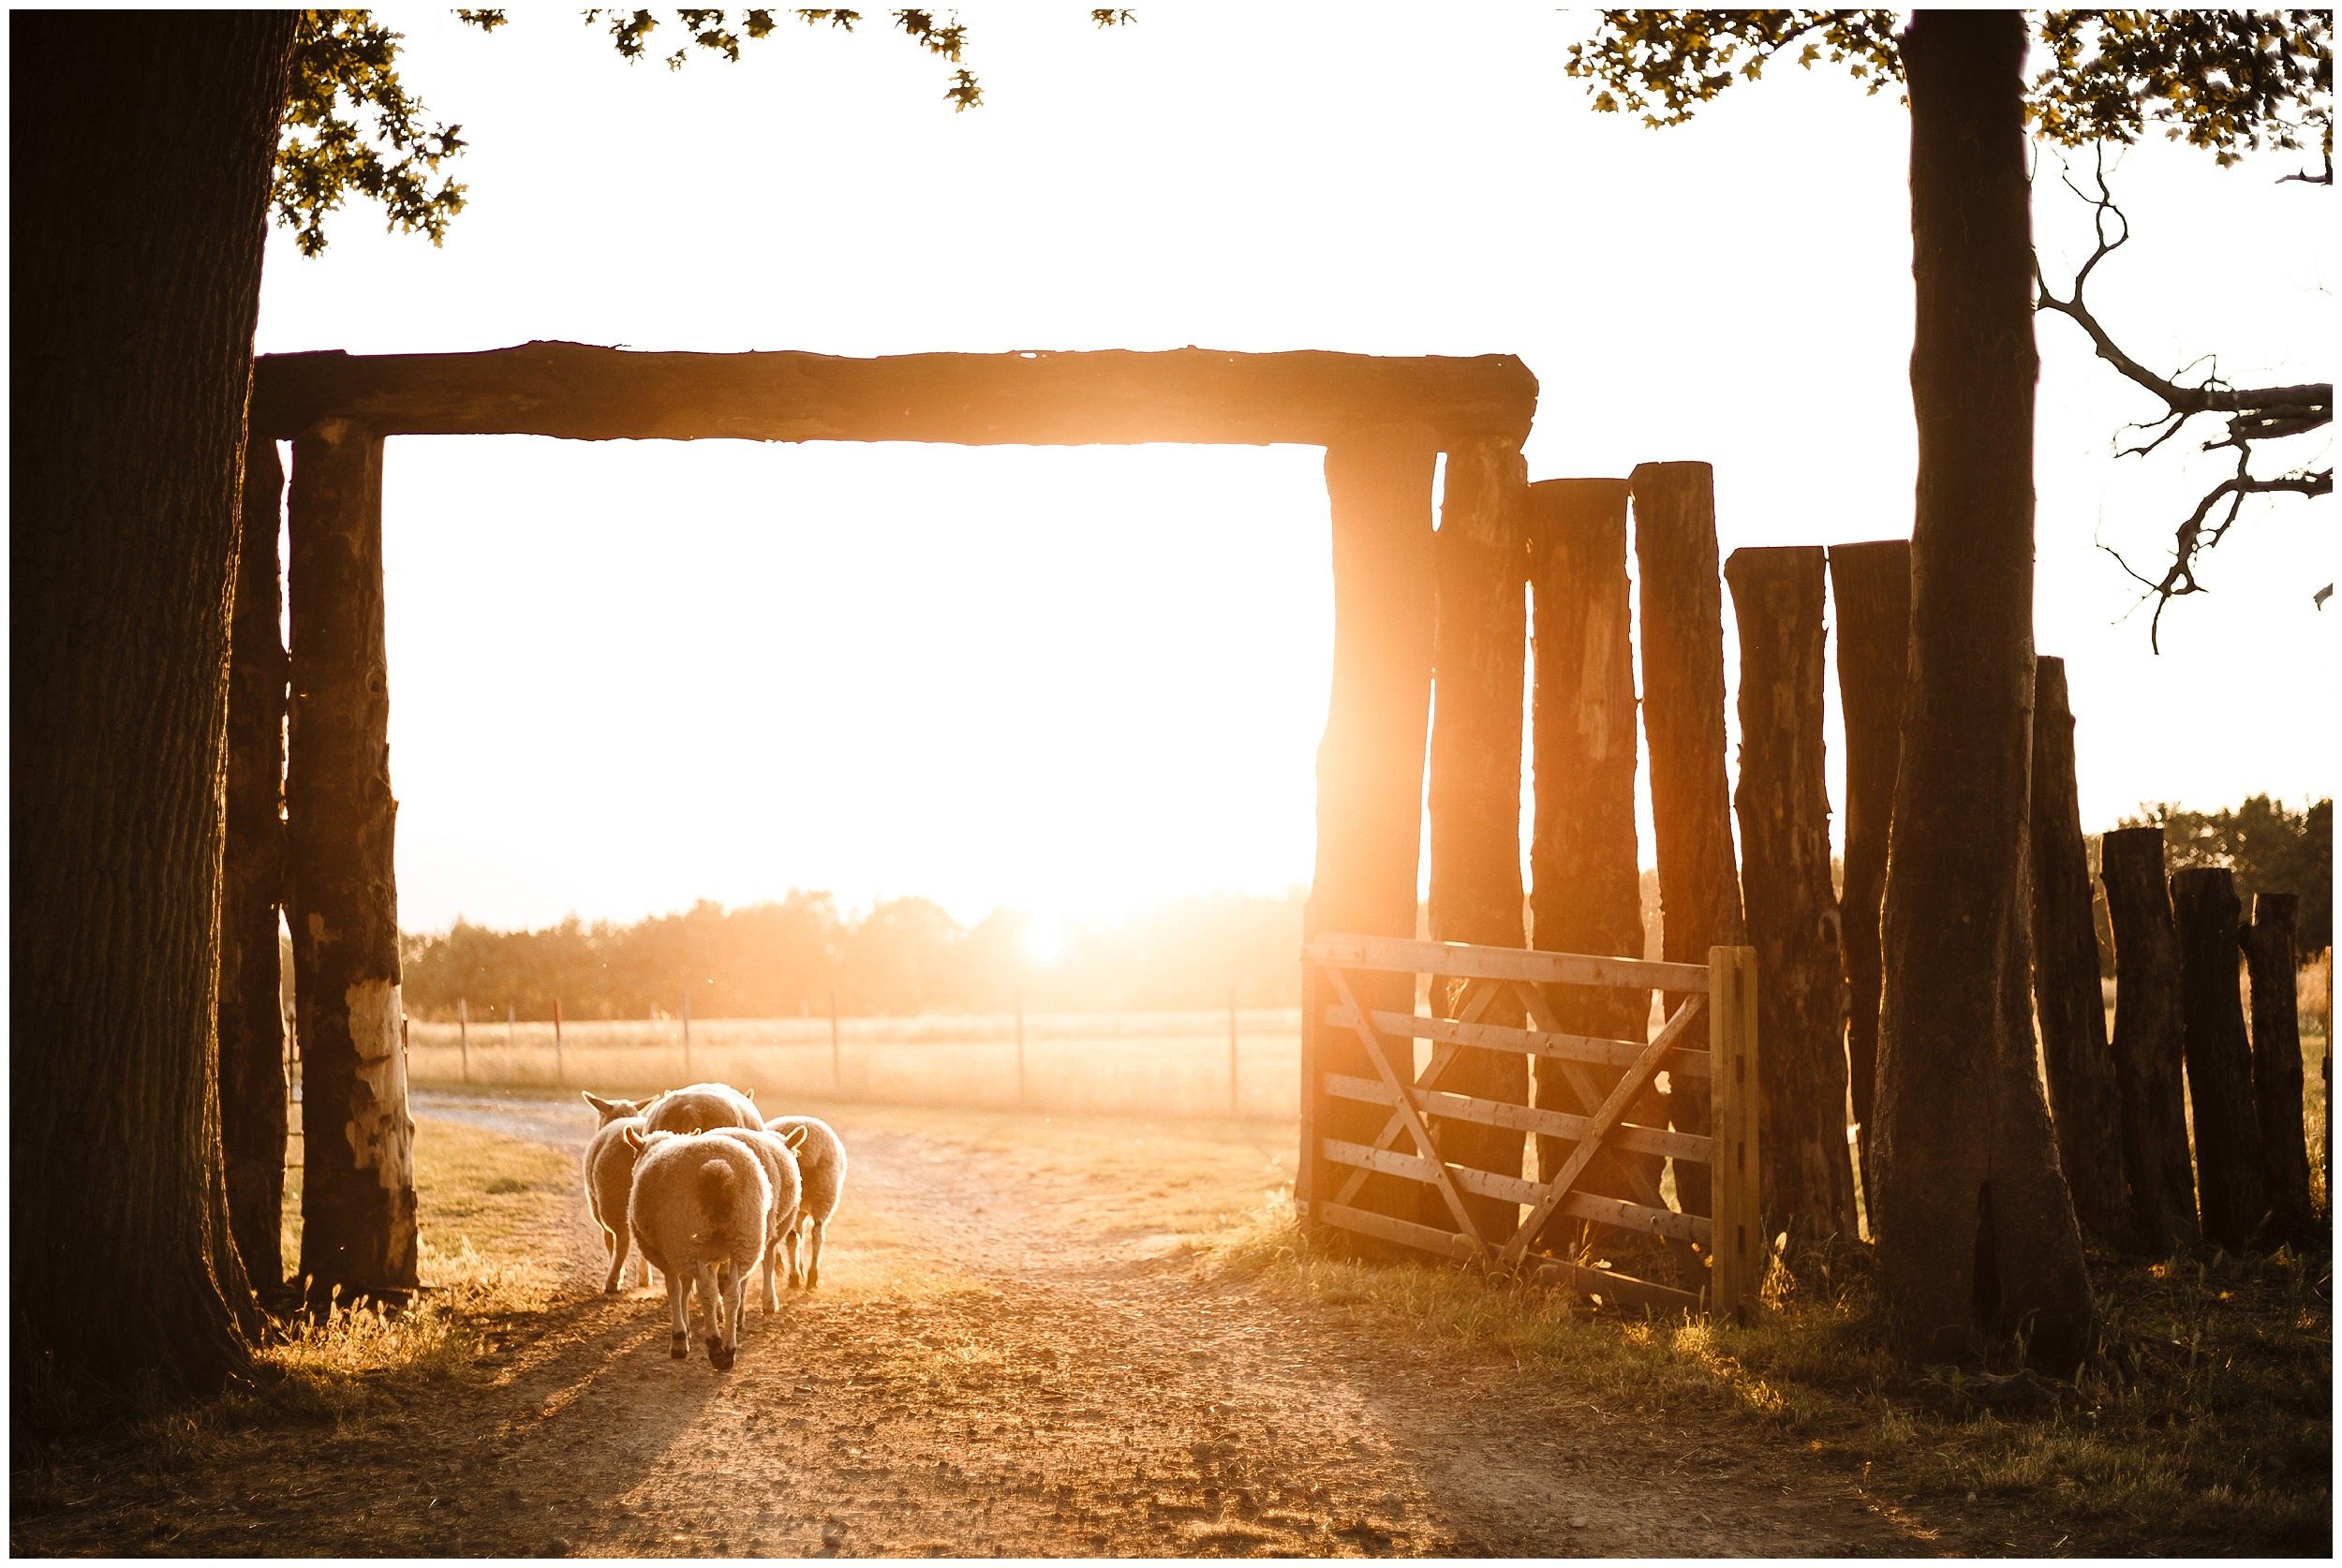 sheep walking through a wedding meadow in yorkshire at sunset